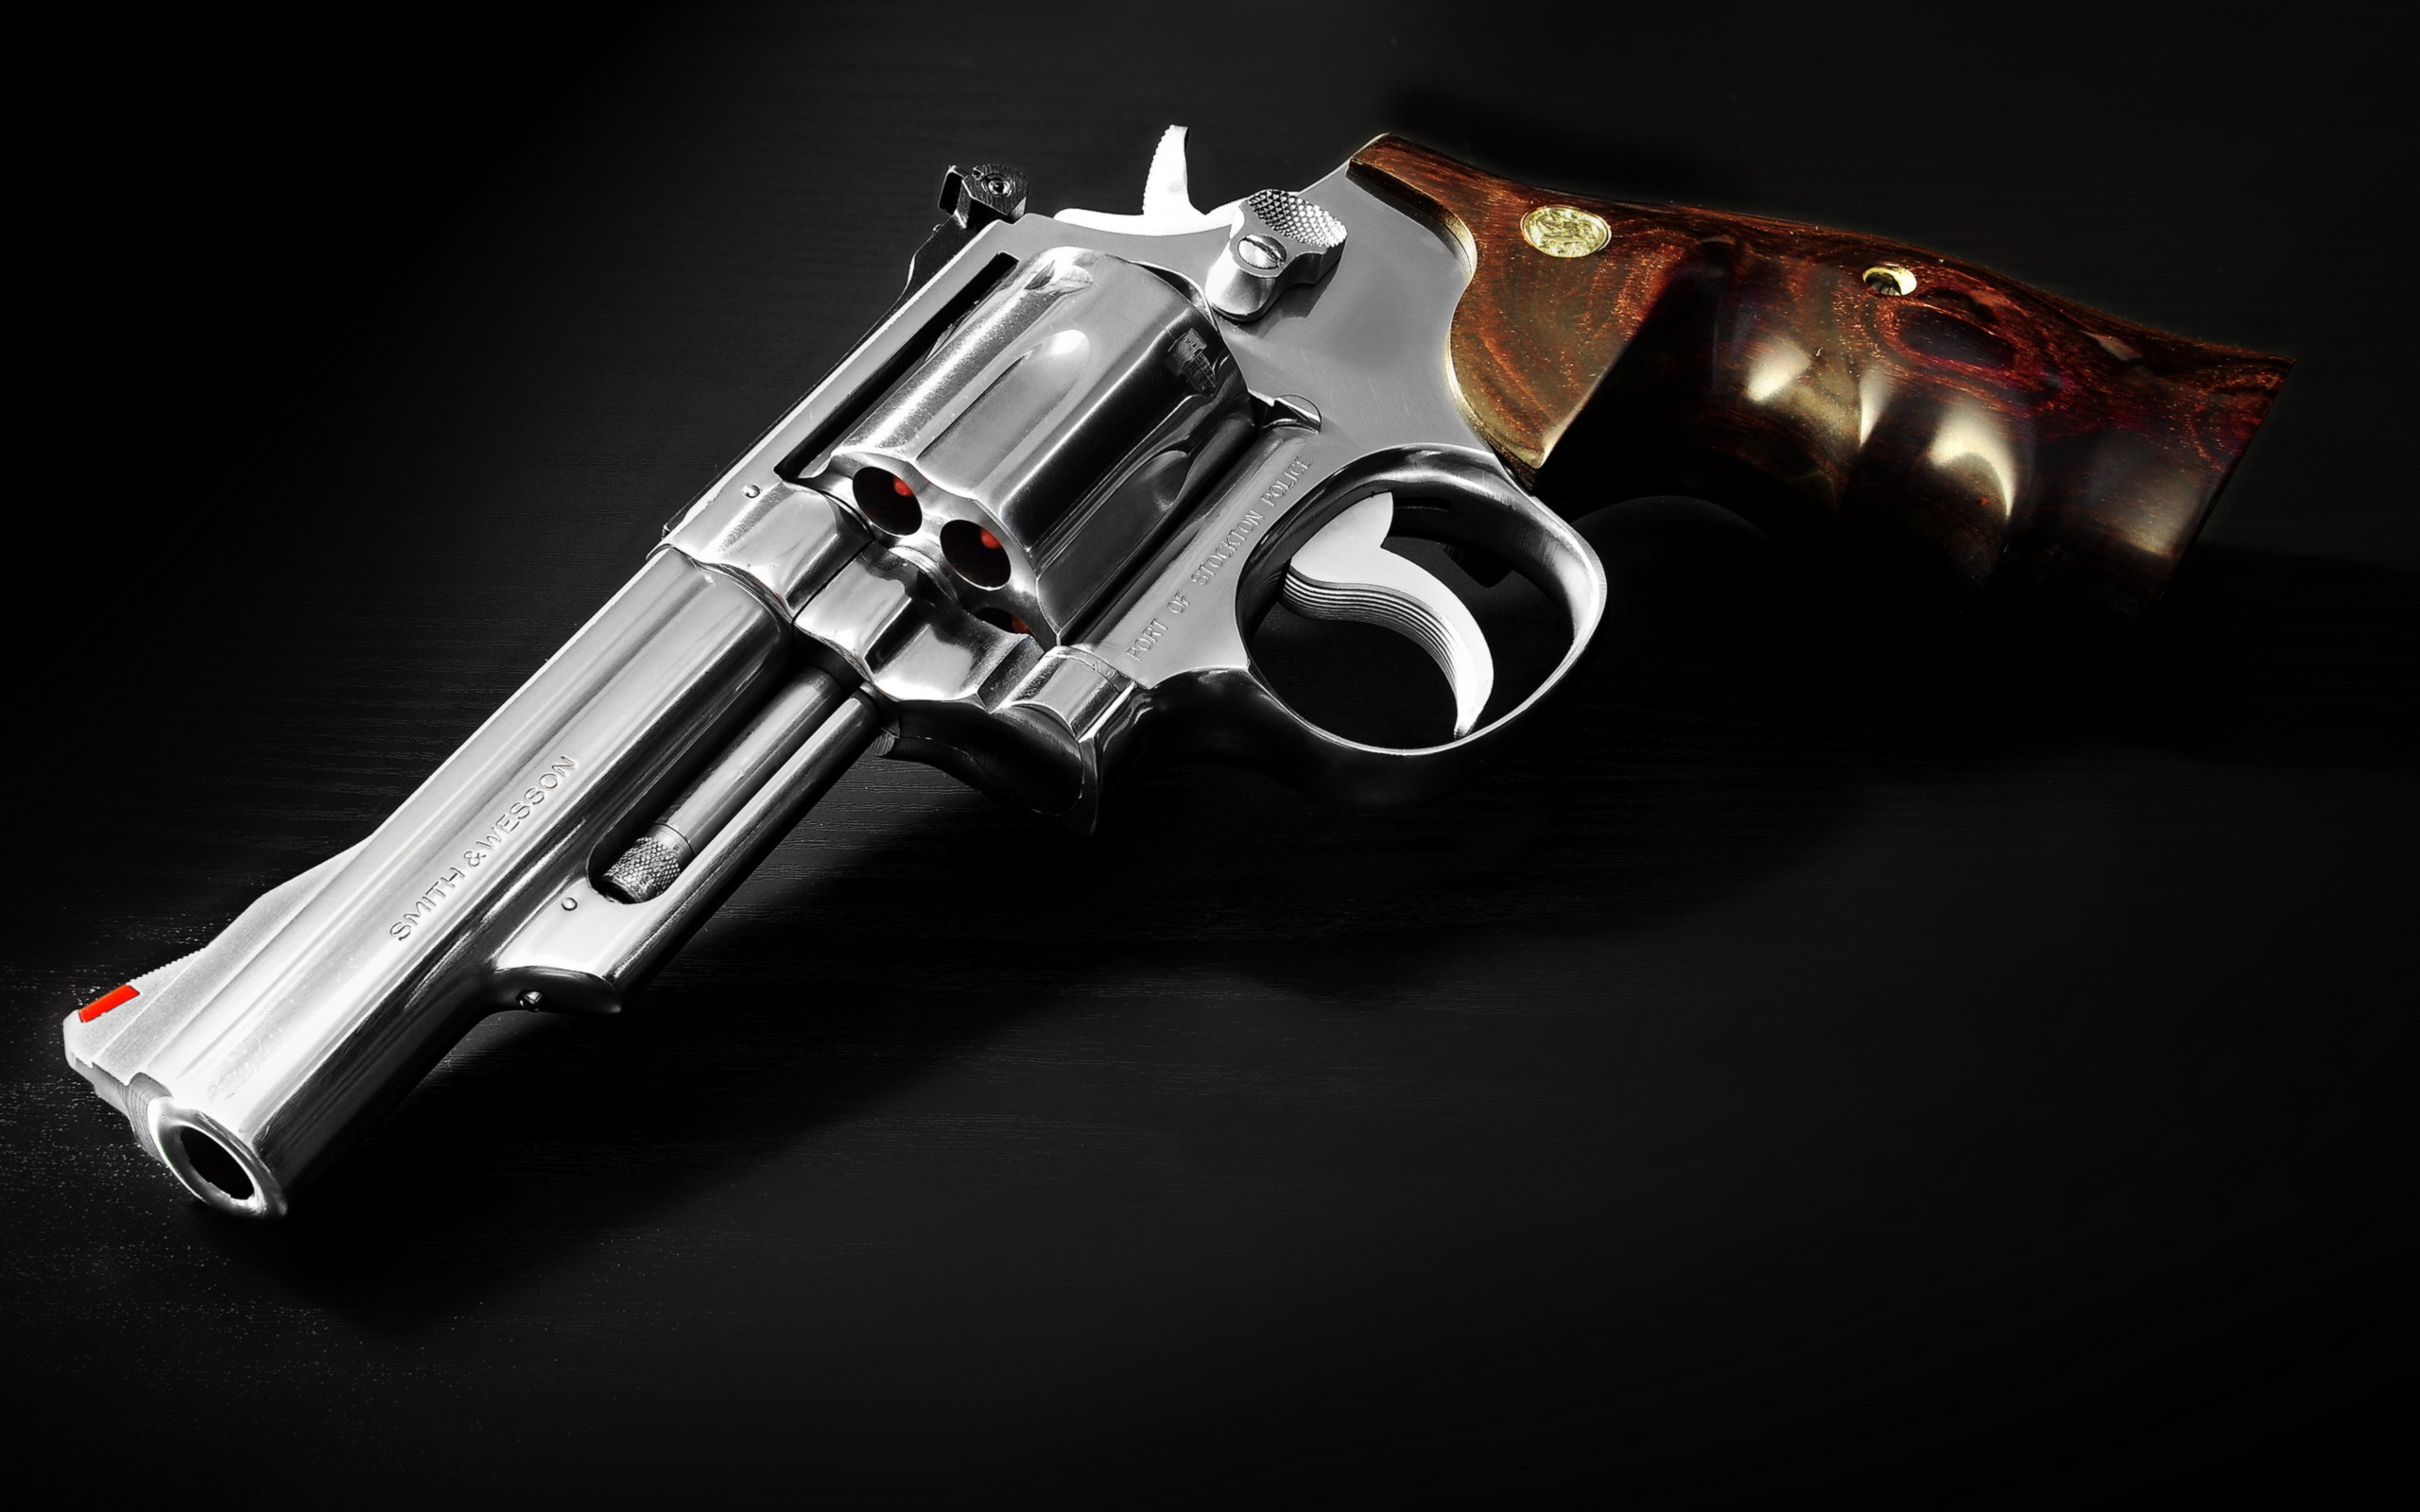 Smith and Wesson 66 1 Computer Wallpapers Desktop Backgrounds 2560x1600